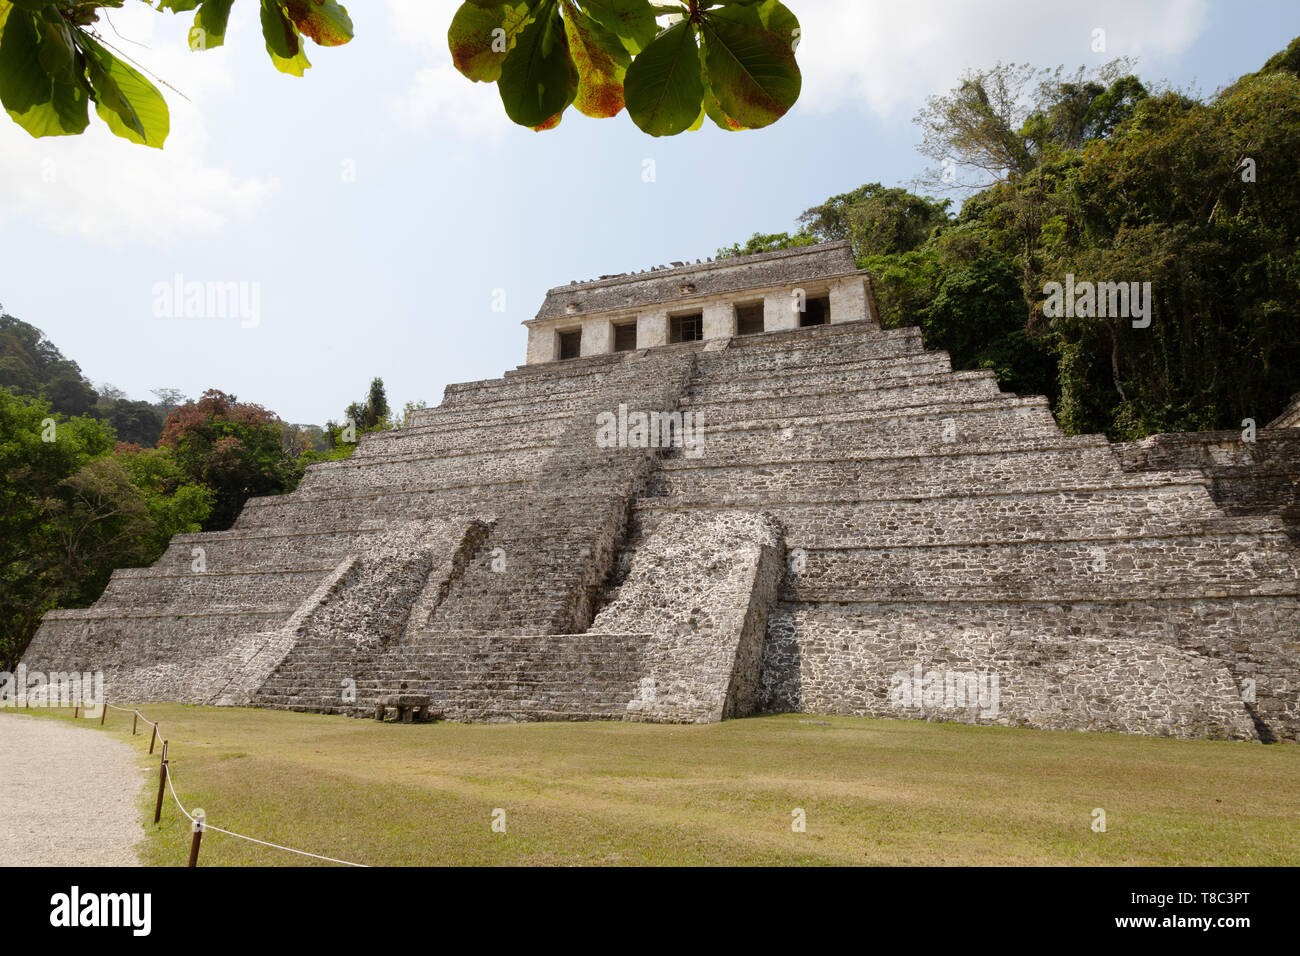 Palenque Mexico - Temple of the Inscriptions, Maya ruined temple, UNESCO world heritage site, Palenque Mexico Latin America - Stock Image